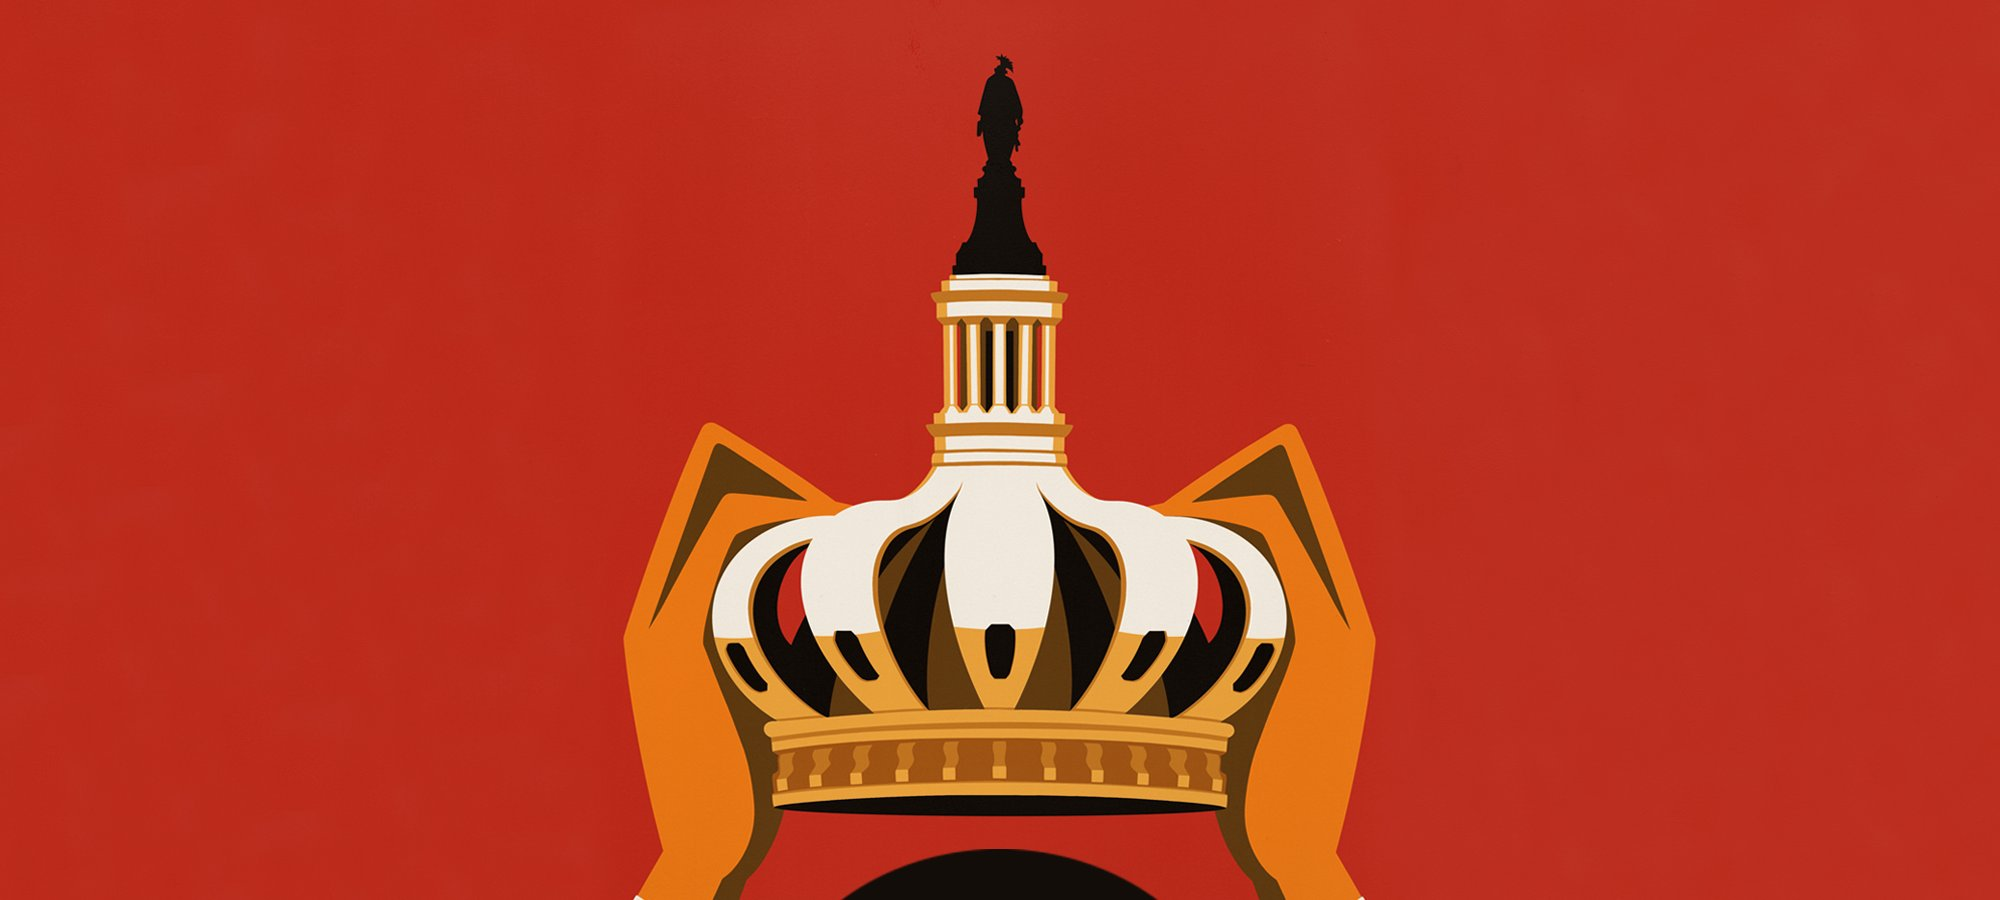 Illustration of a crown shaped like Capitol architecture